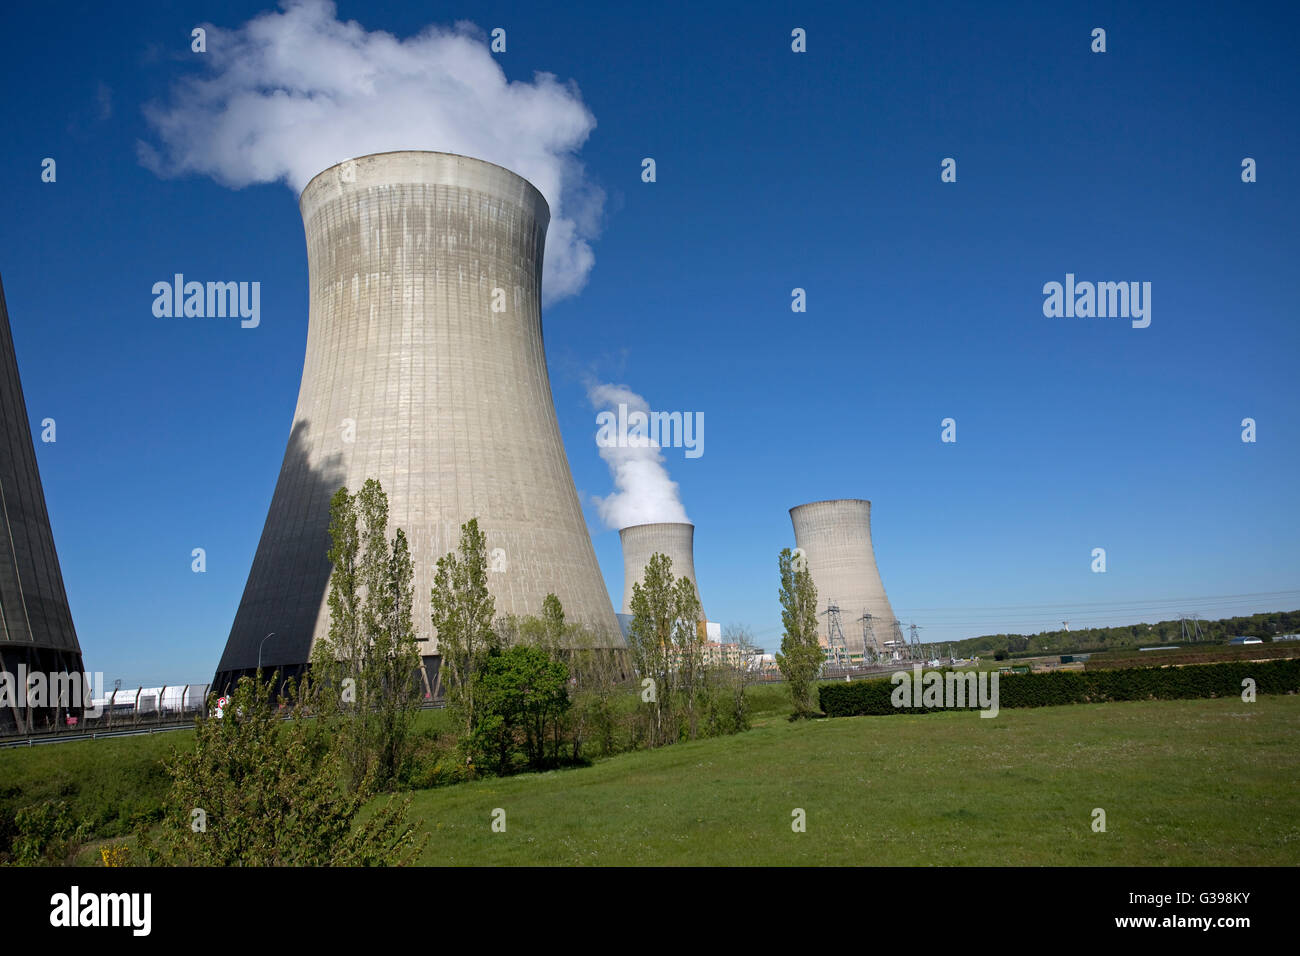 Cooling towers  EDF nuclear power plant Dampierre-en-Burly France - Stock Image